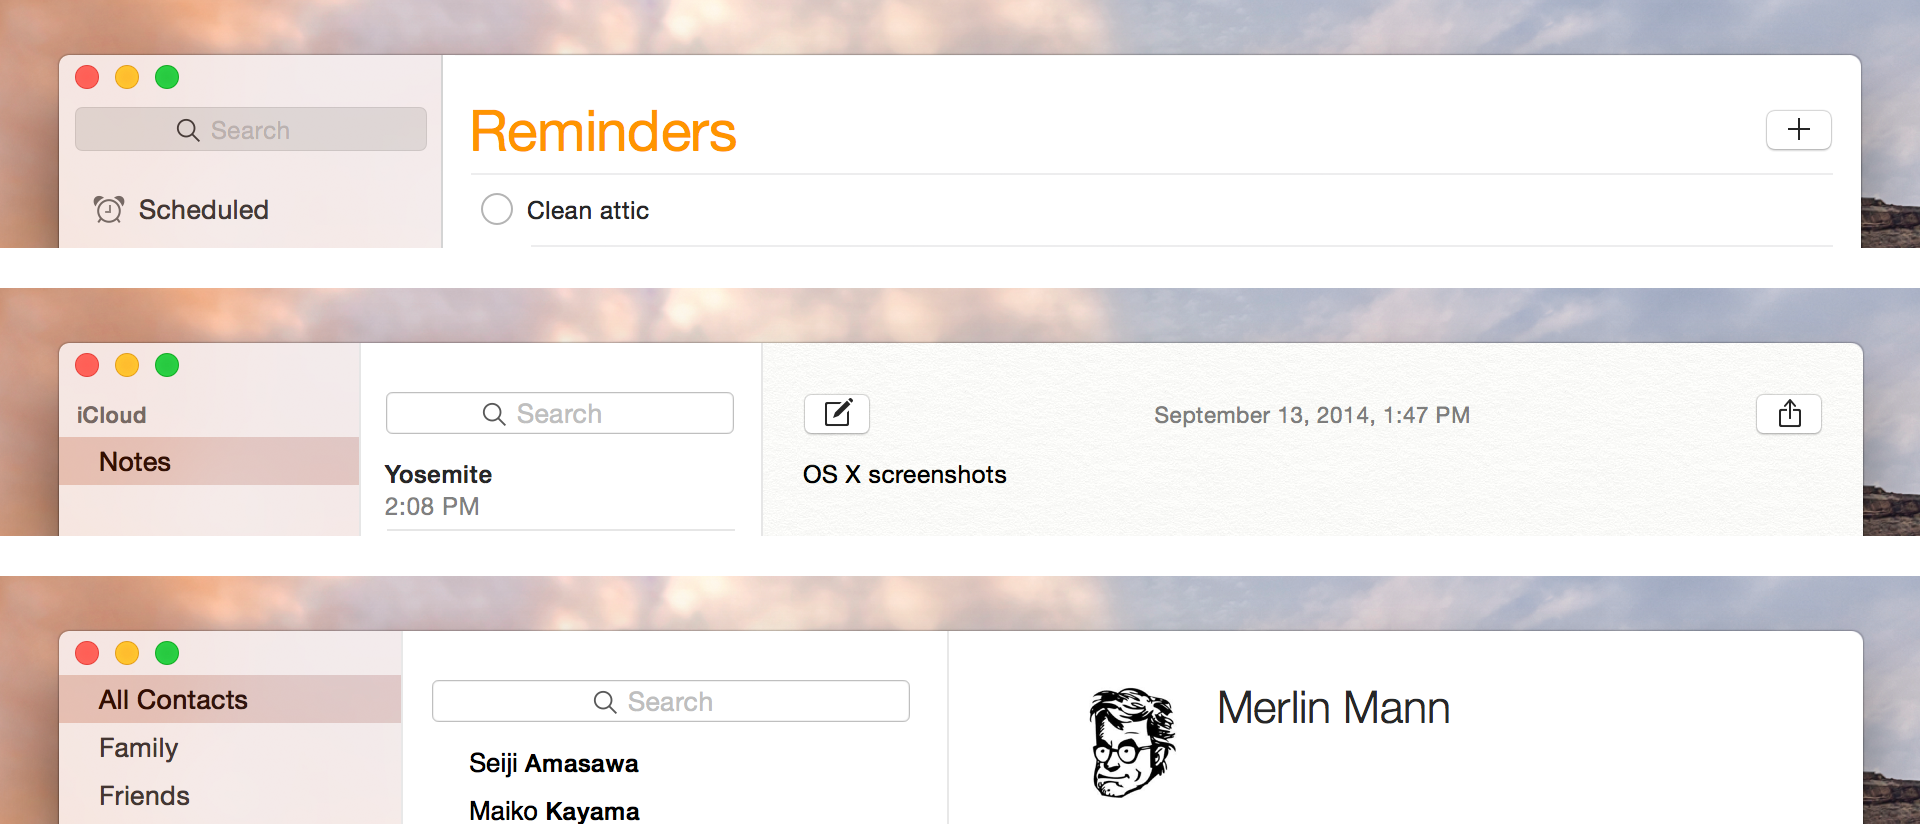 """Invisible"" title bar examples, from top to bottom: Reminders, Notes, Contacts."